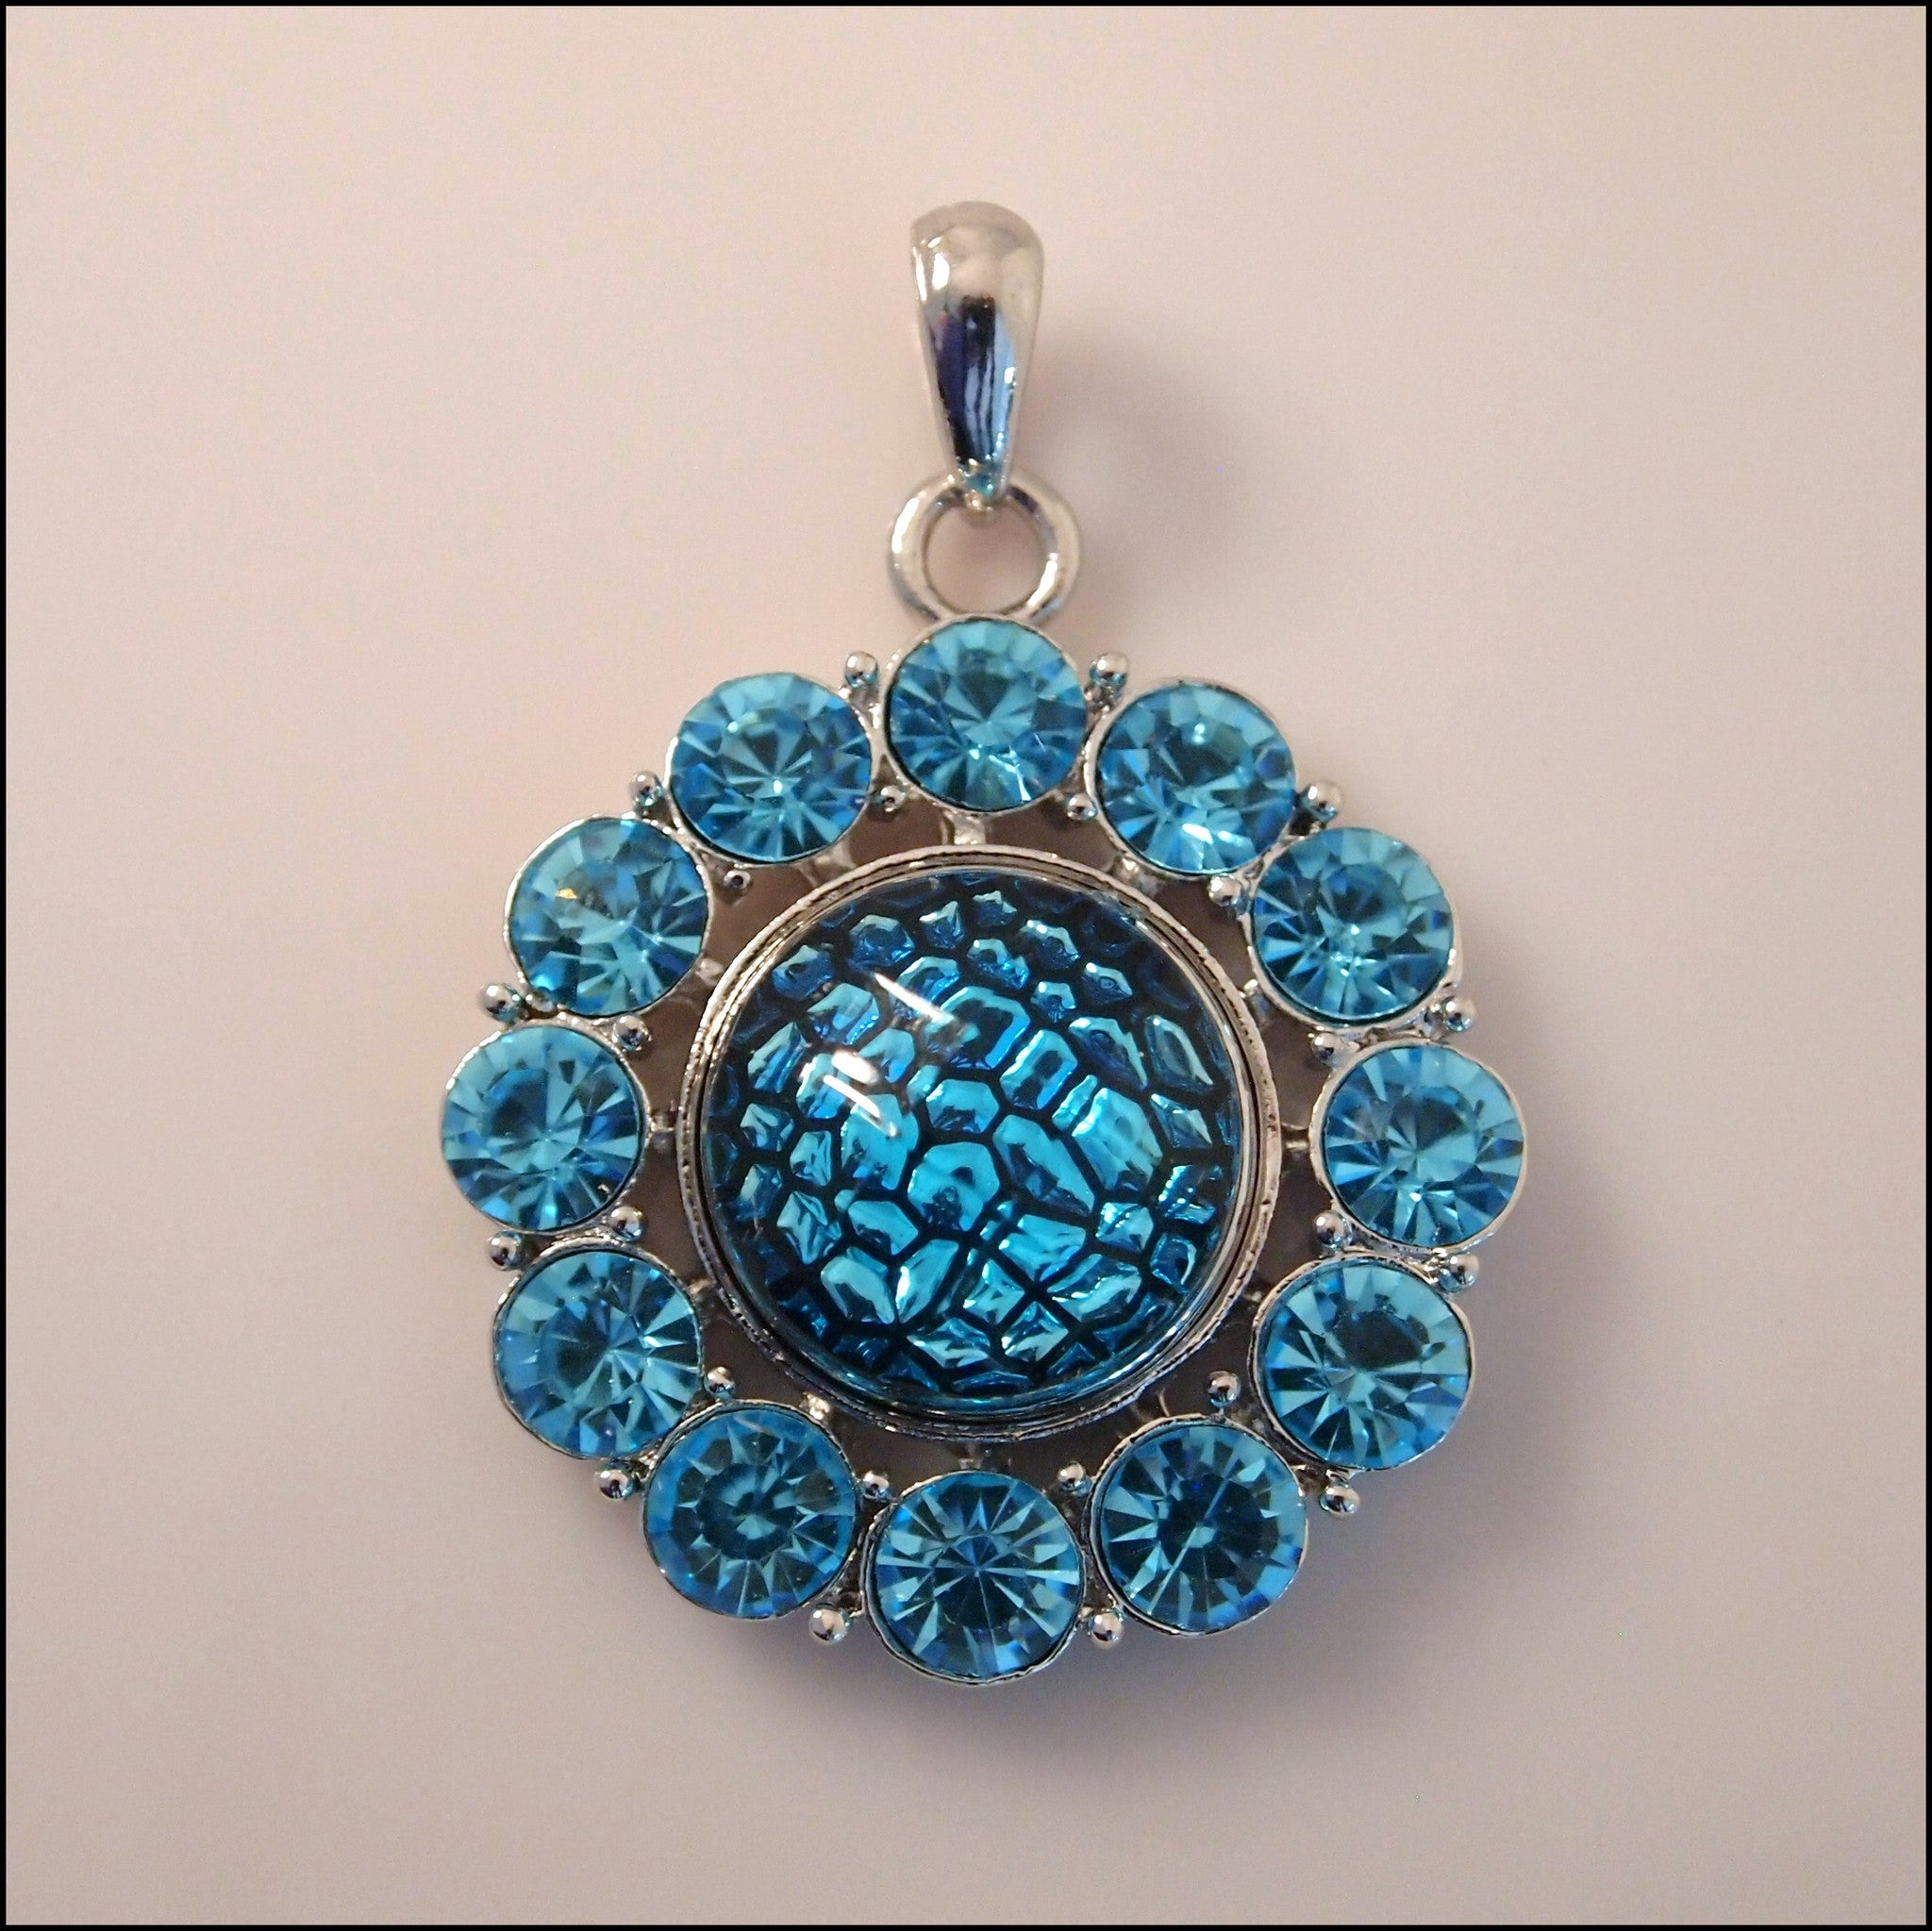 Bright Blue Crystal Snap Pendant with Snap Button - Find Something Special